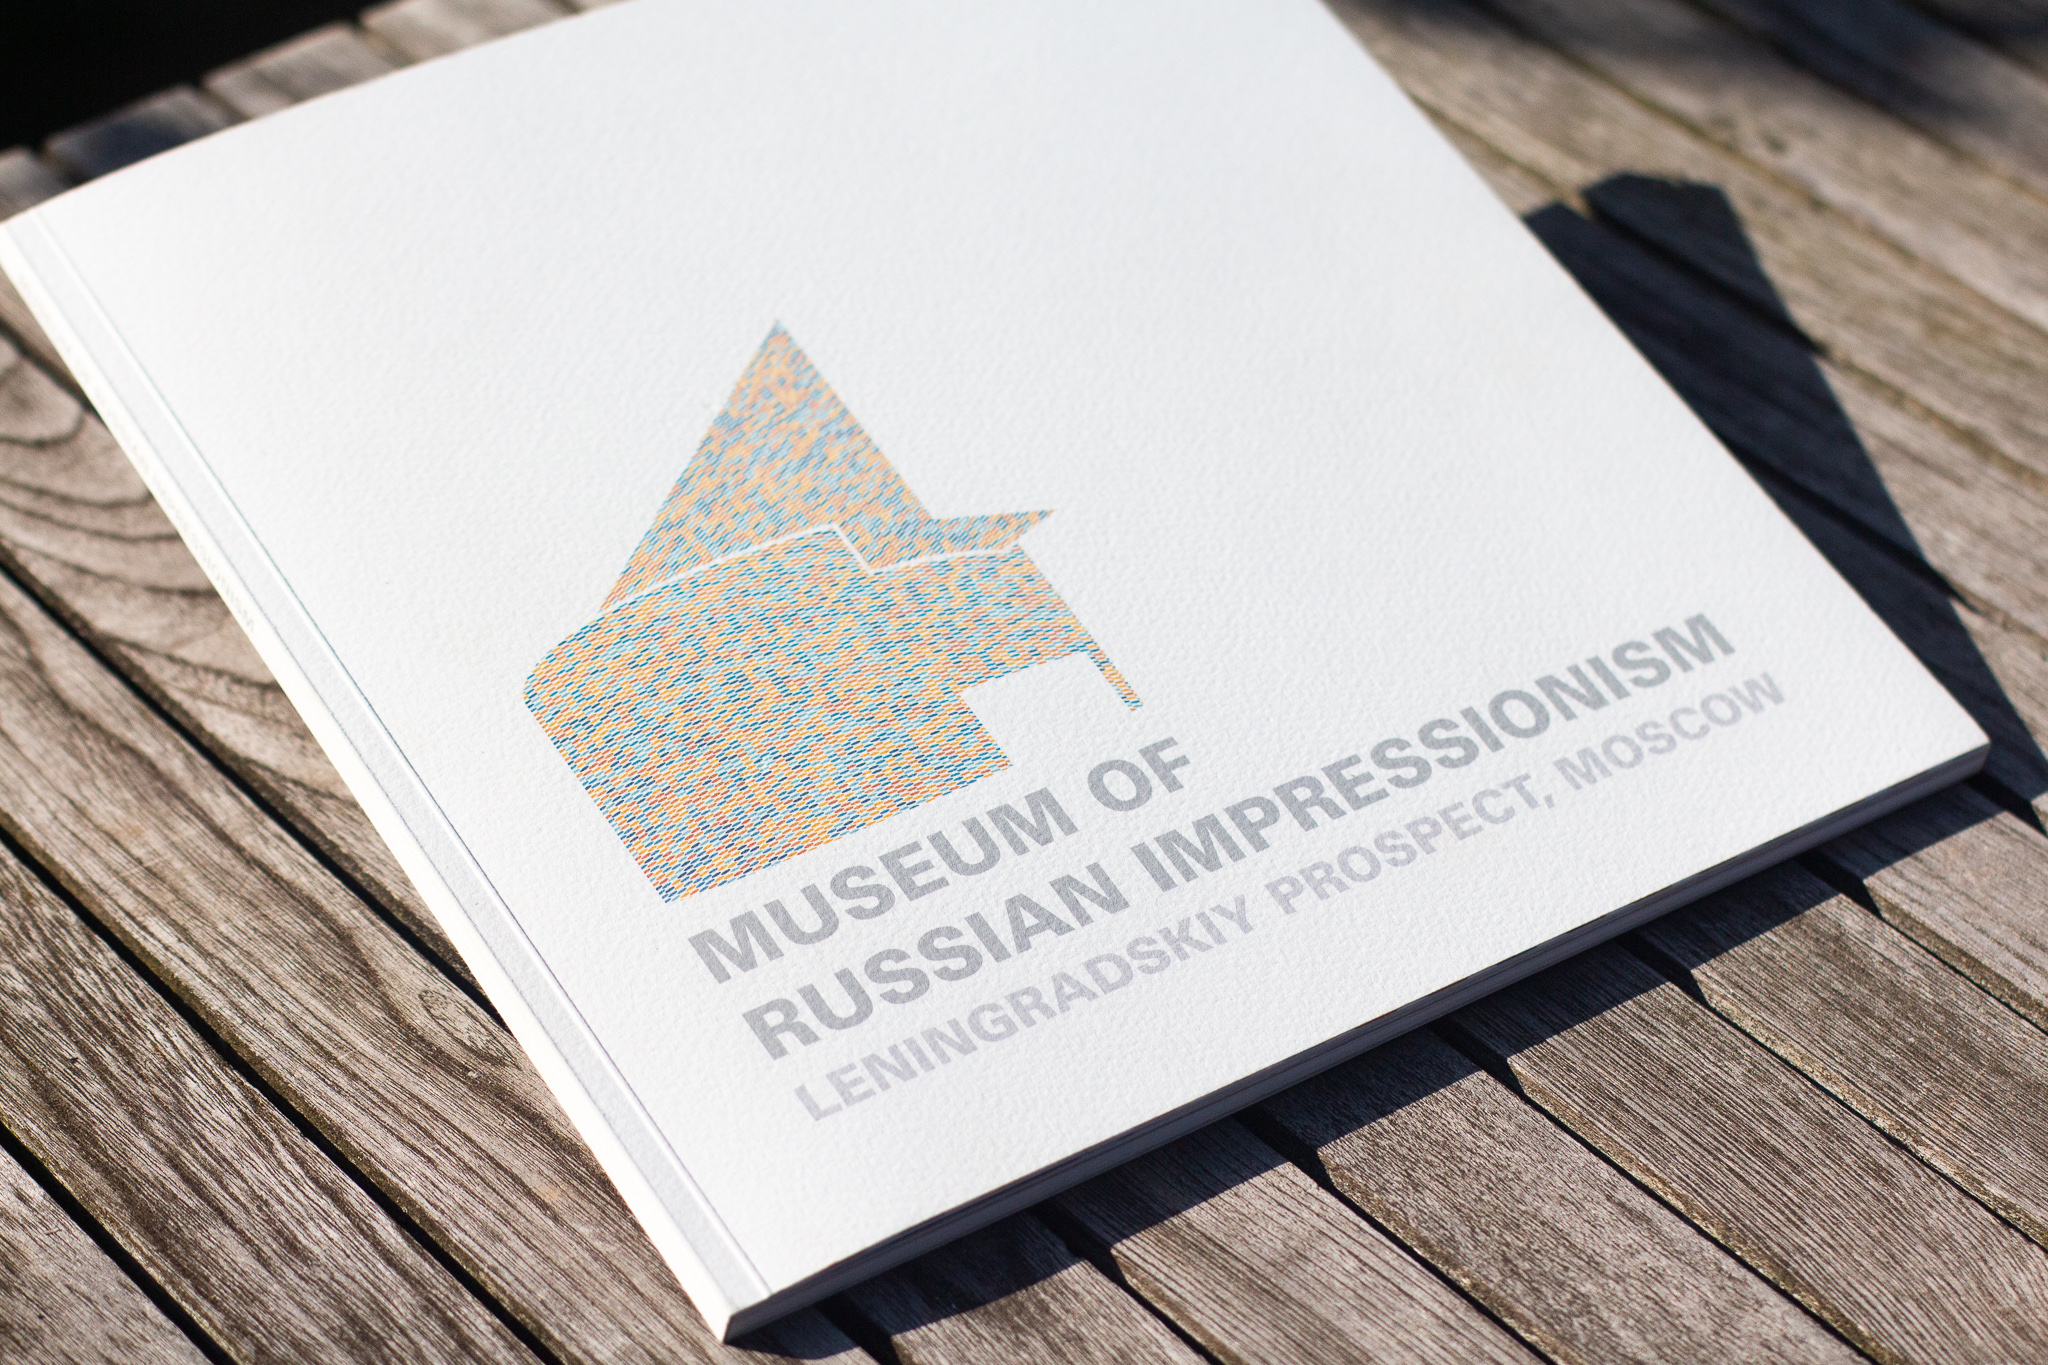 The Museum of Russian Impressionism